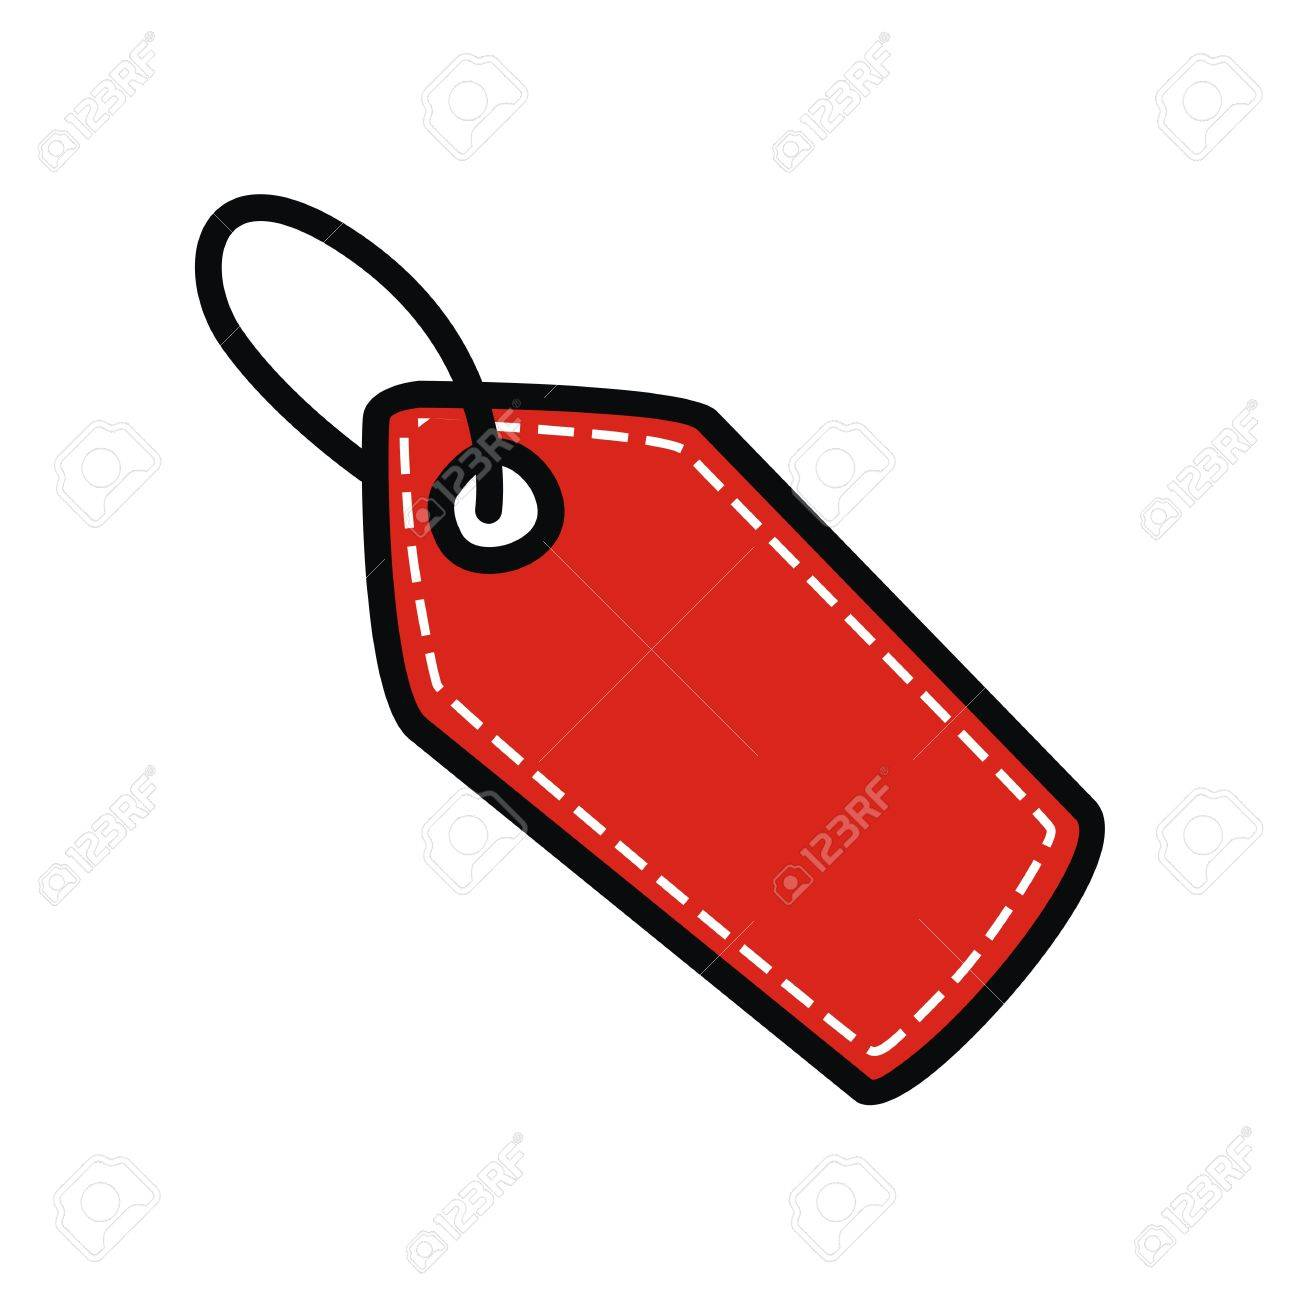 price tag clip art vector royalty free cliparts, vectors, and stock  illustration. image 67647023.  123rf